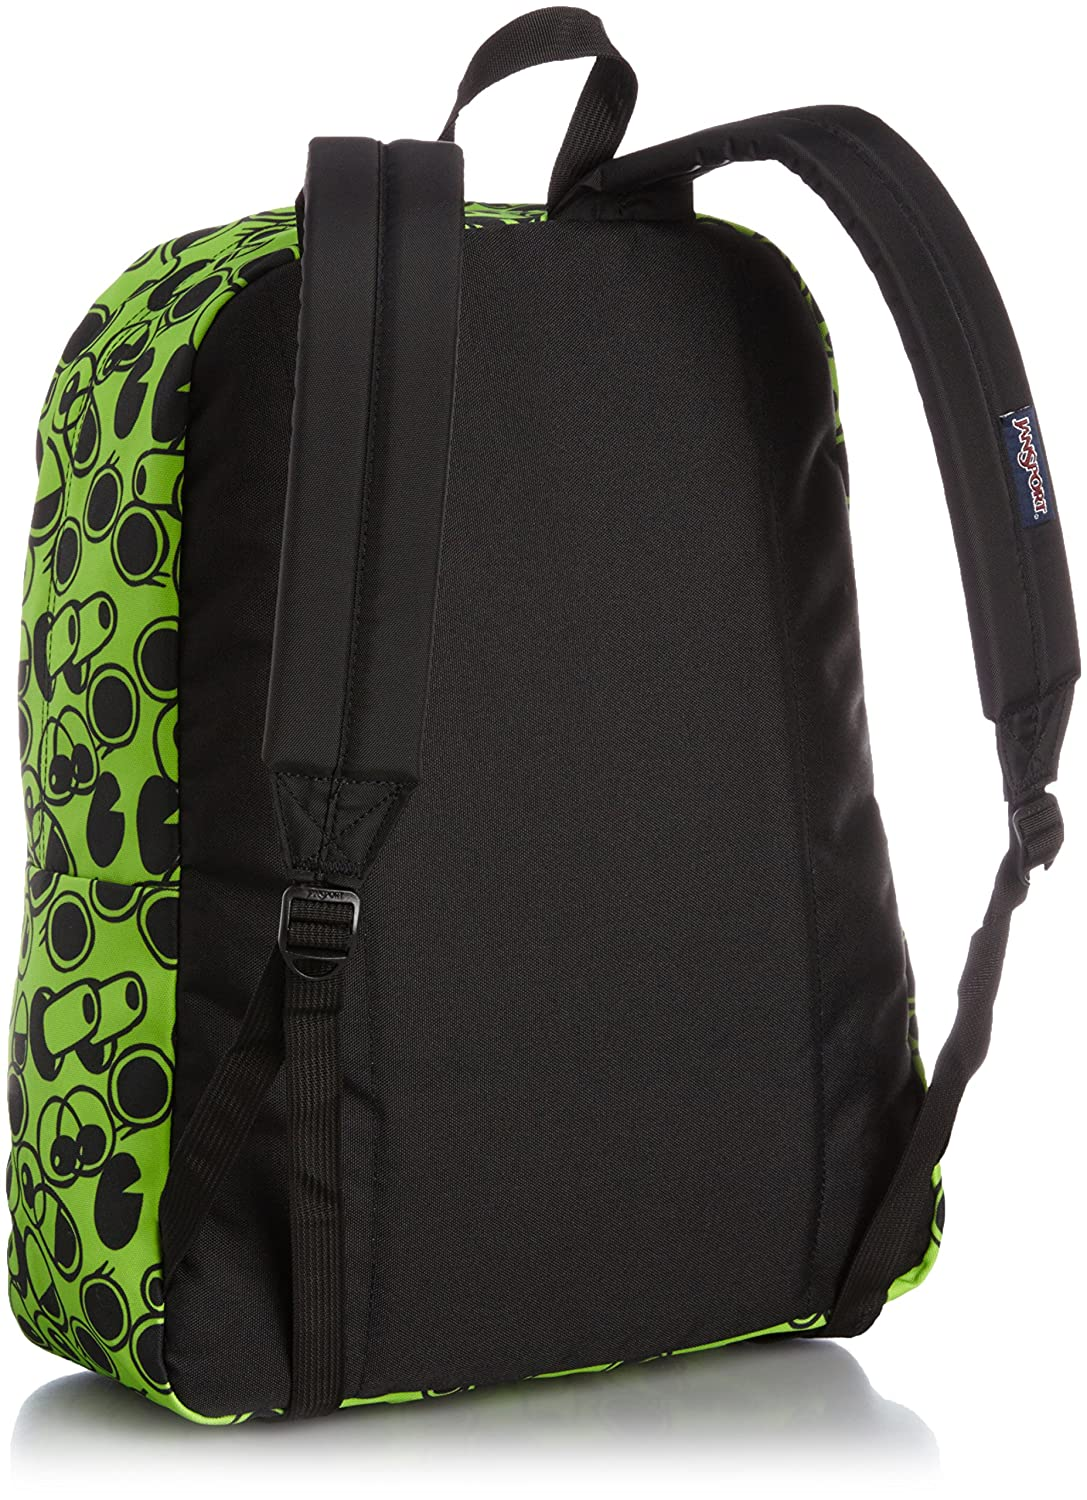 JanSport Superbreak Backpack Zap Green Double Vision